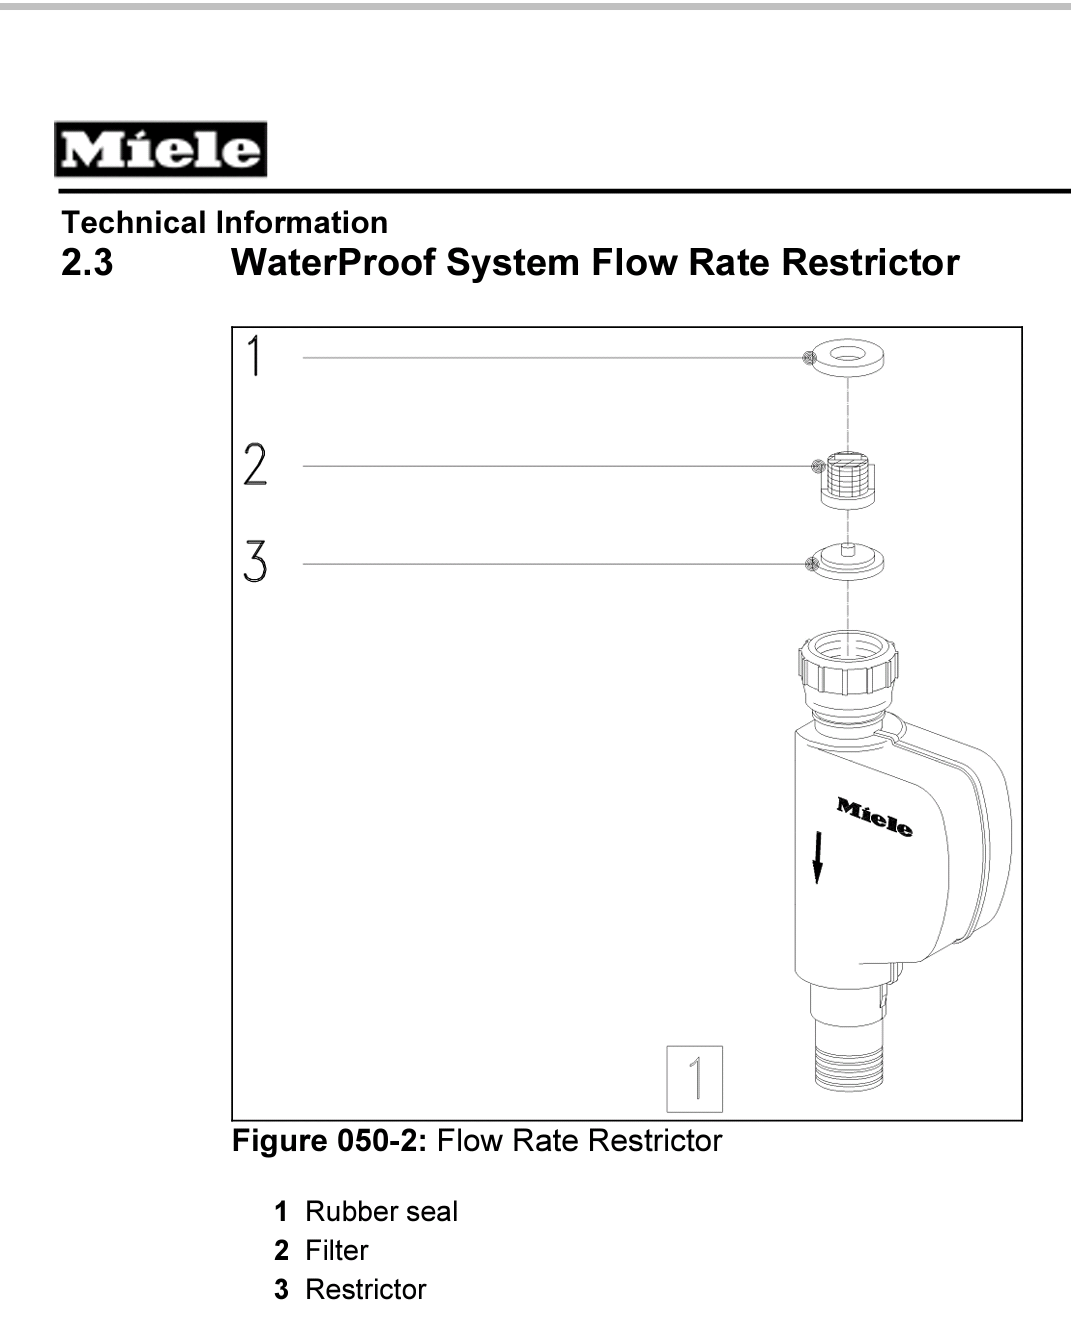 wiring diagram for a electrolux 3 way fridge fender eric clapton strat miele library dishwasher wps